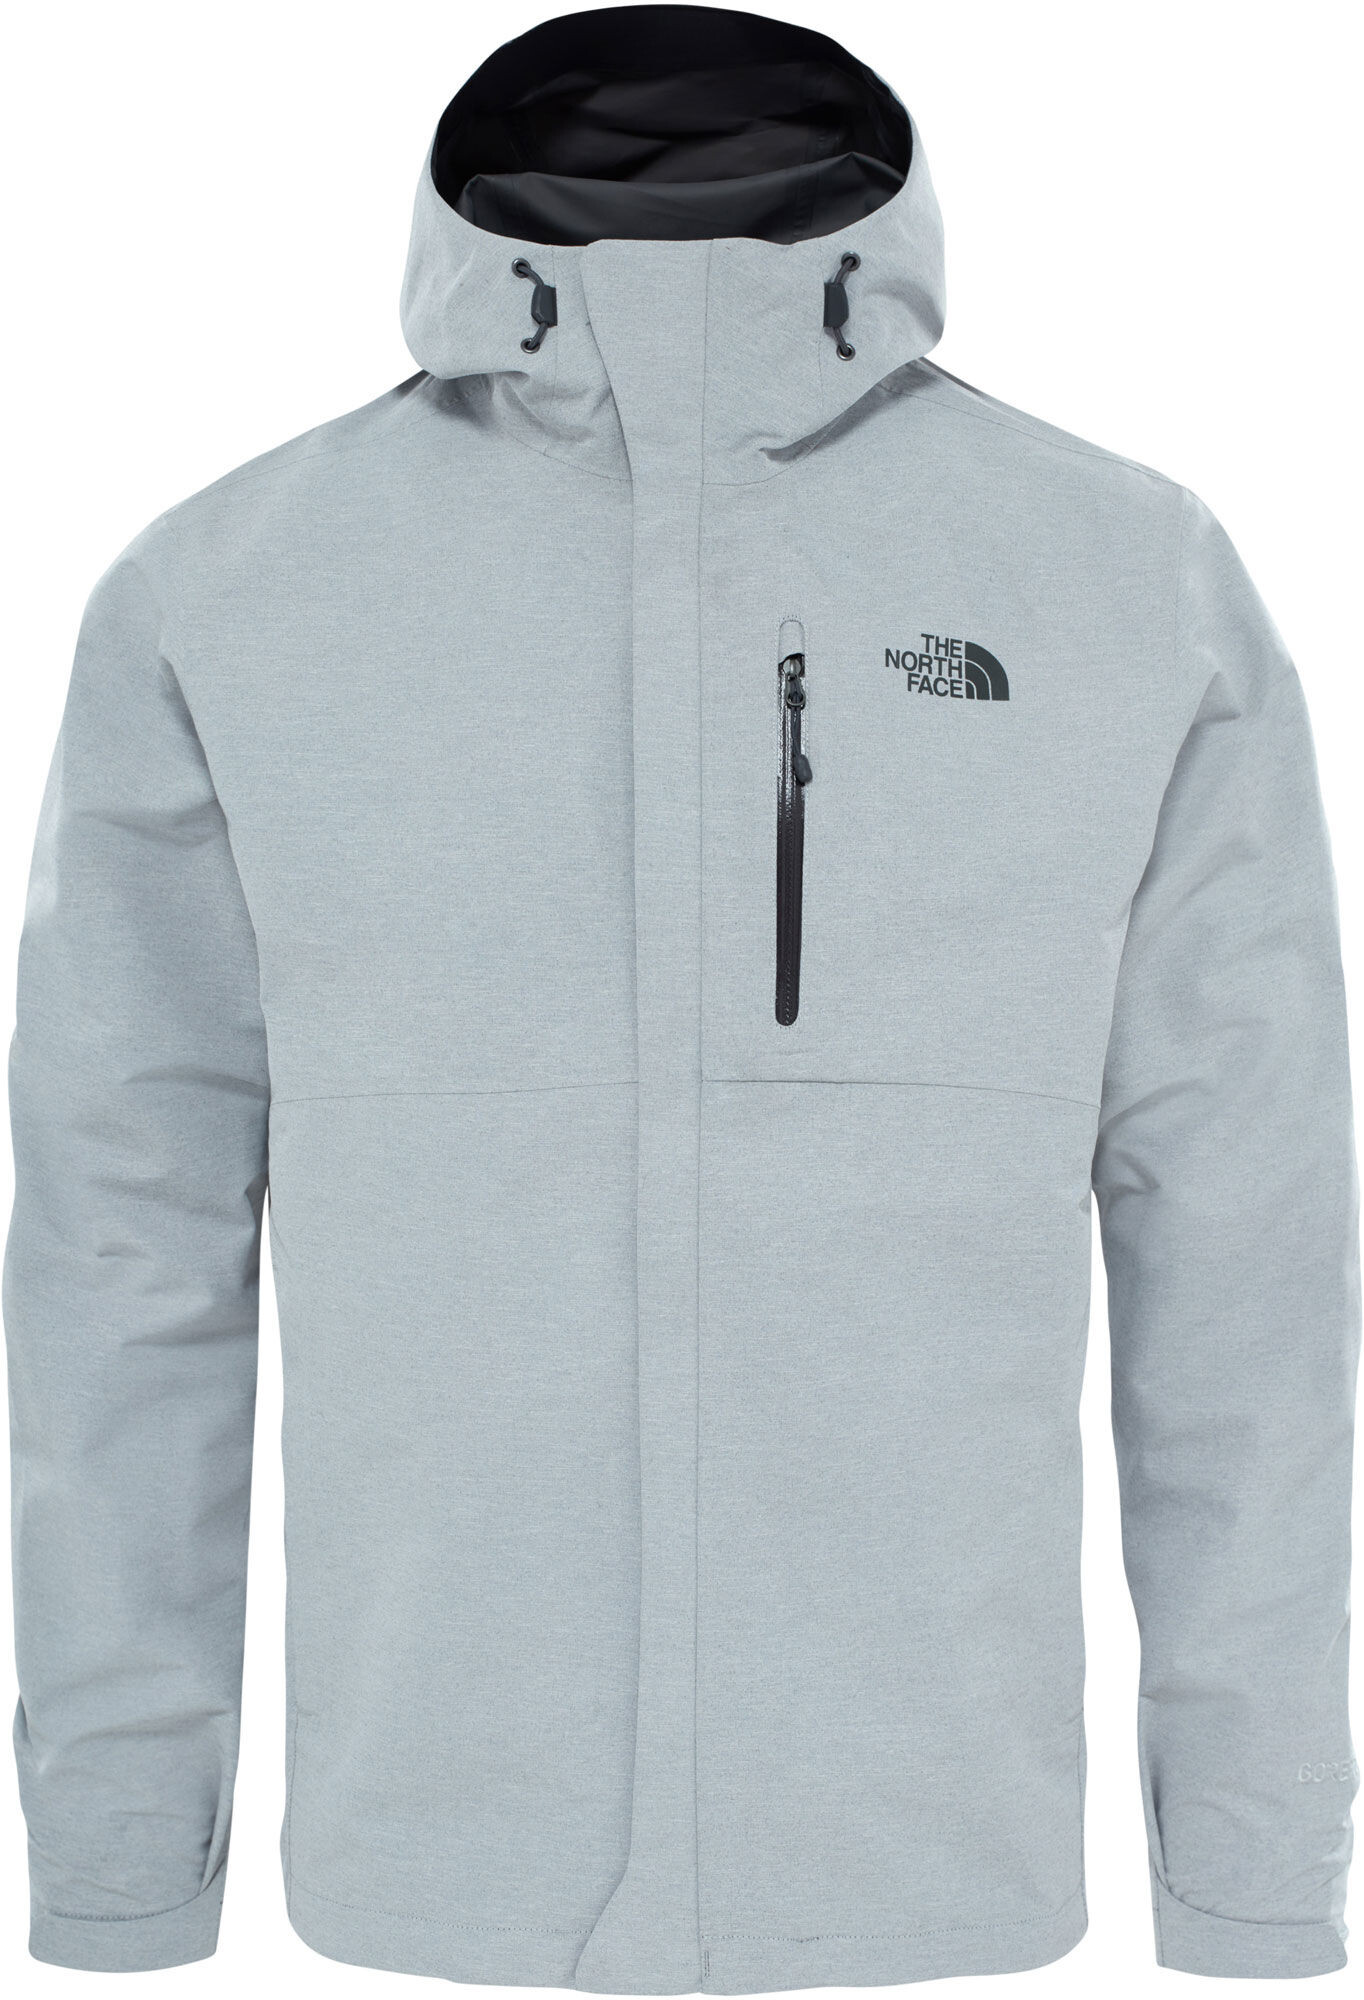 The North Face Dryzzle - Veste Homme - gris sur CAMPZ ! 40043ddcfae1